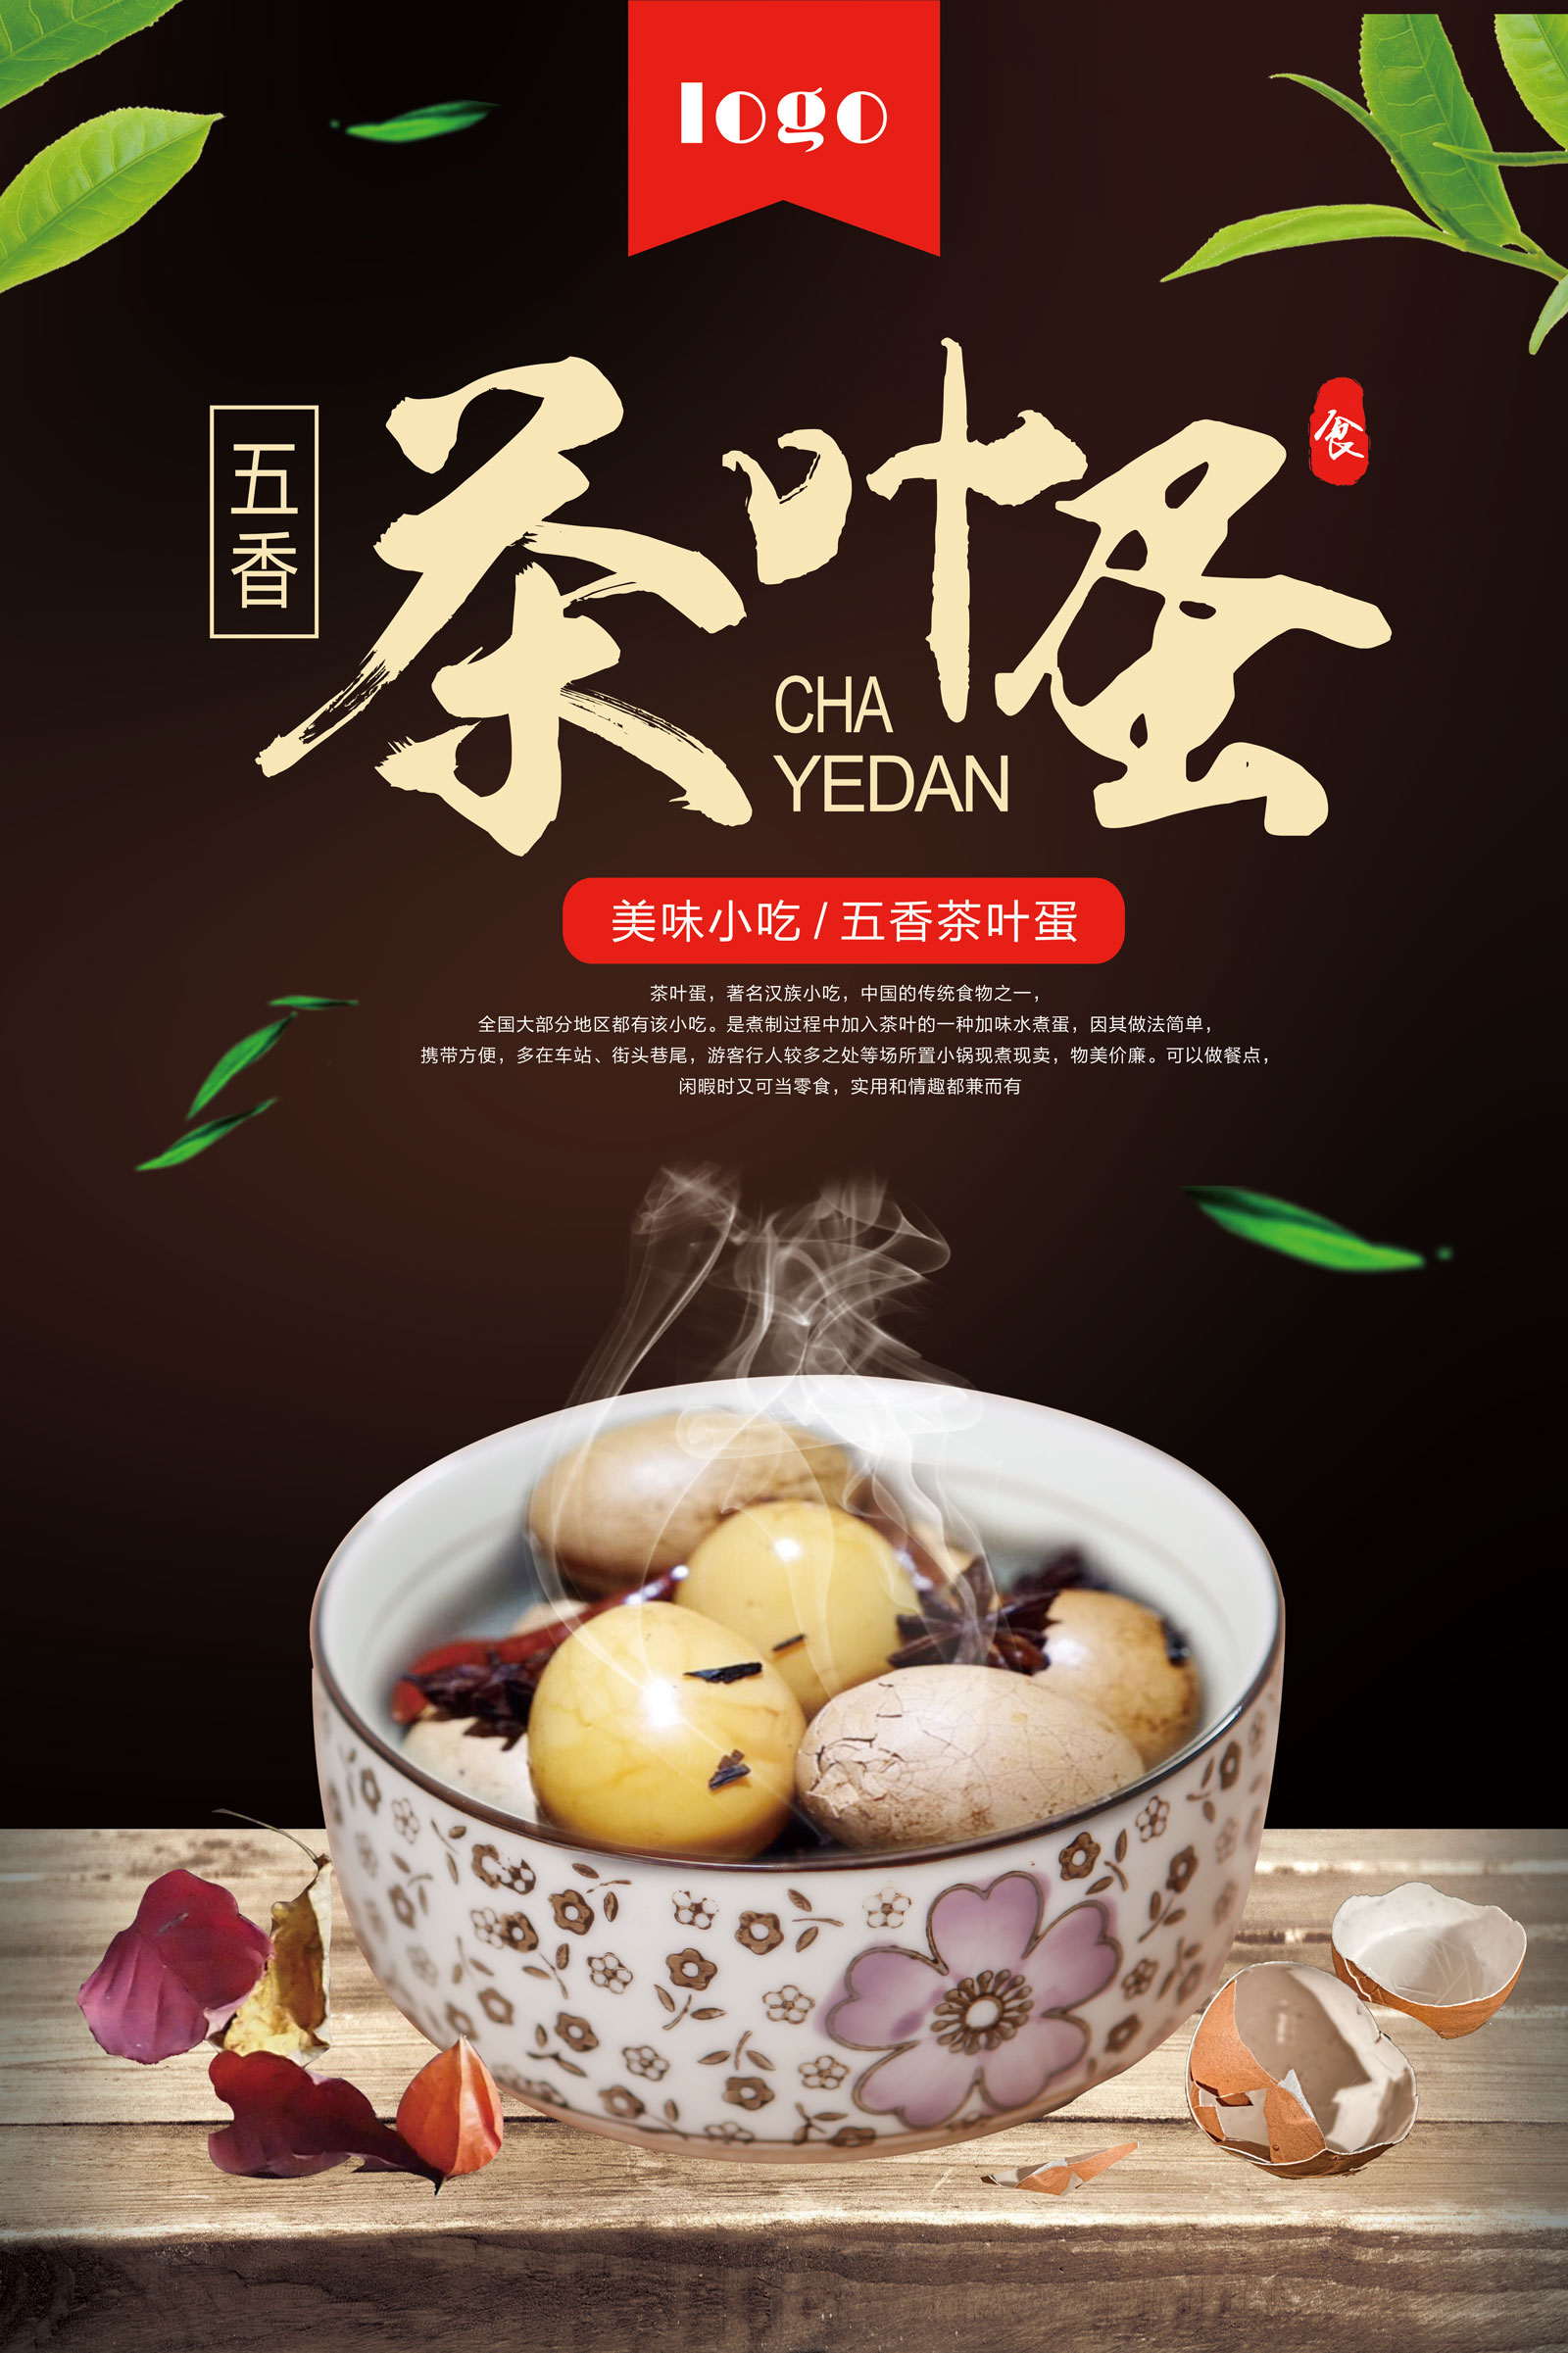 chinesefontdesign.com 2017 03 25 09 44 27 Delicious snacks spiced tea eggs posters psd material China PSD File Free Download